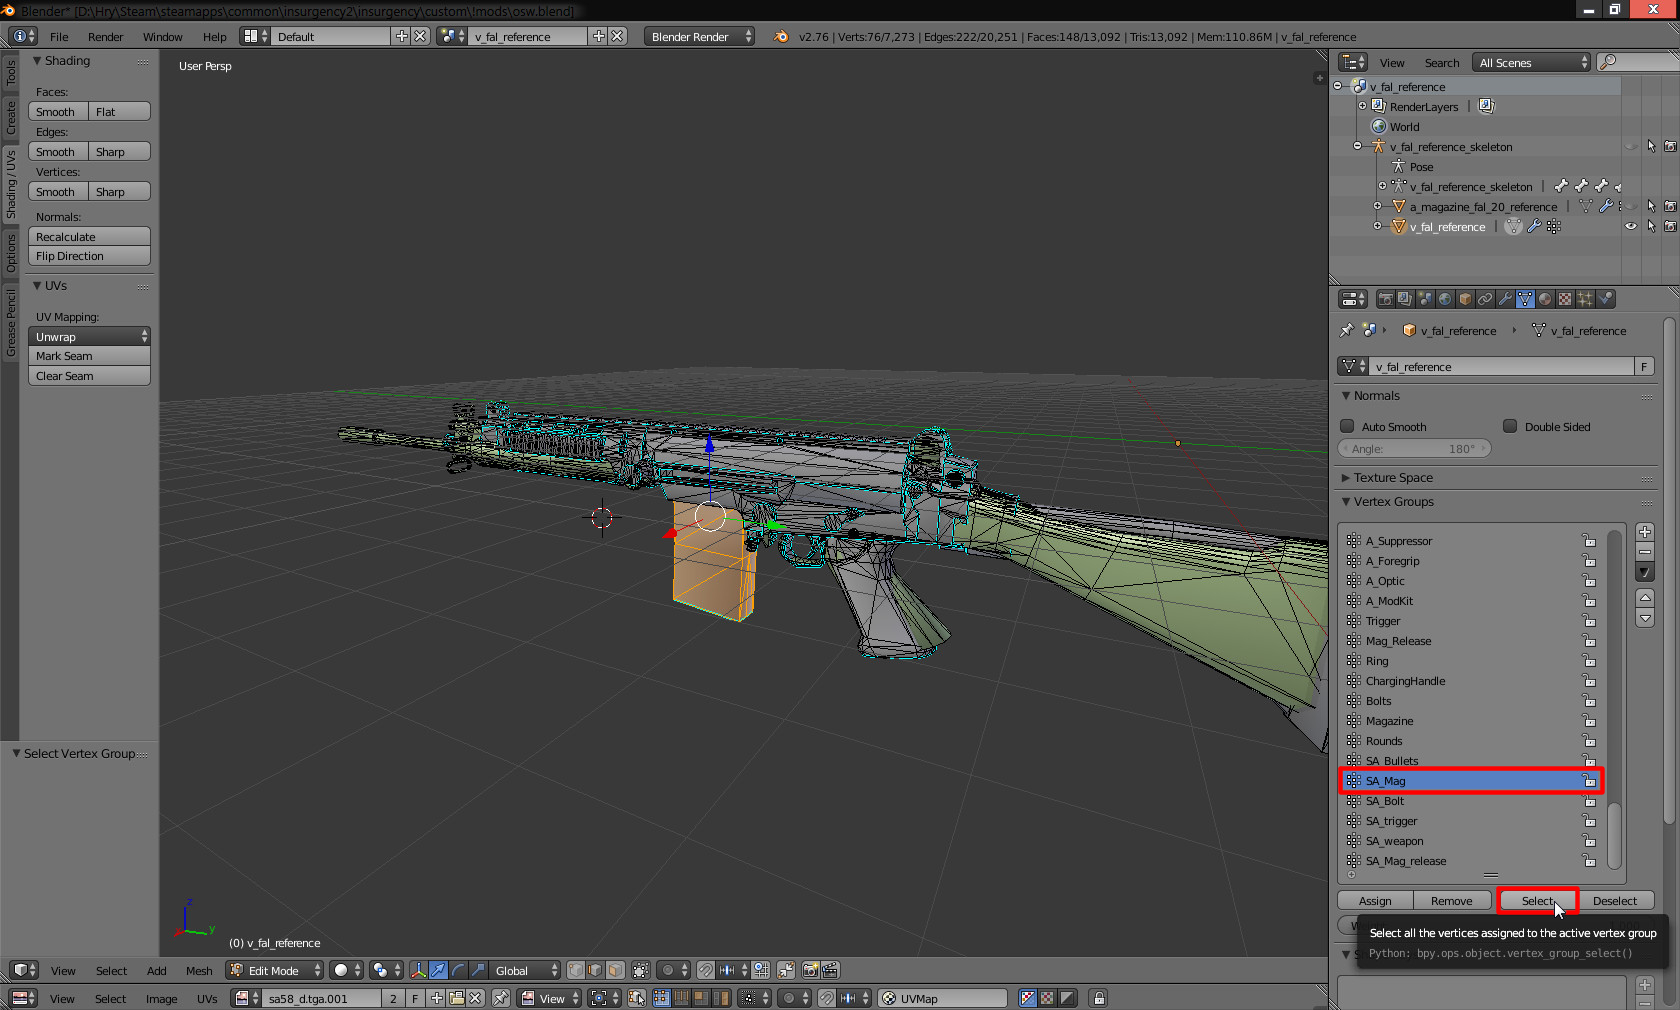 Steam Community :: Guide :: Insurgency weapon modding tutorial (not